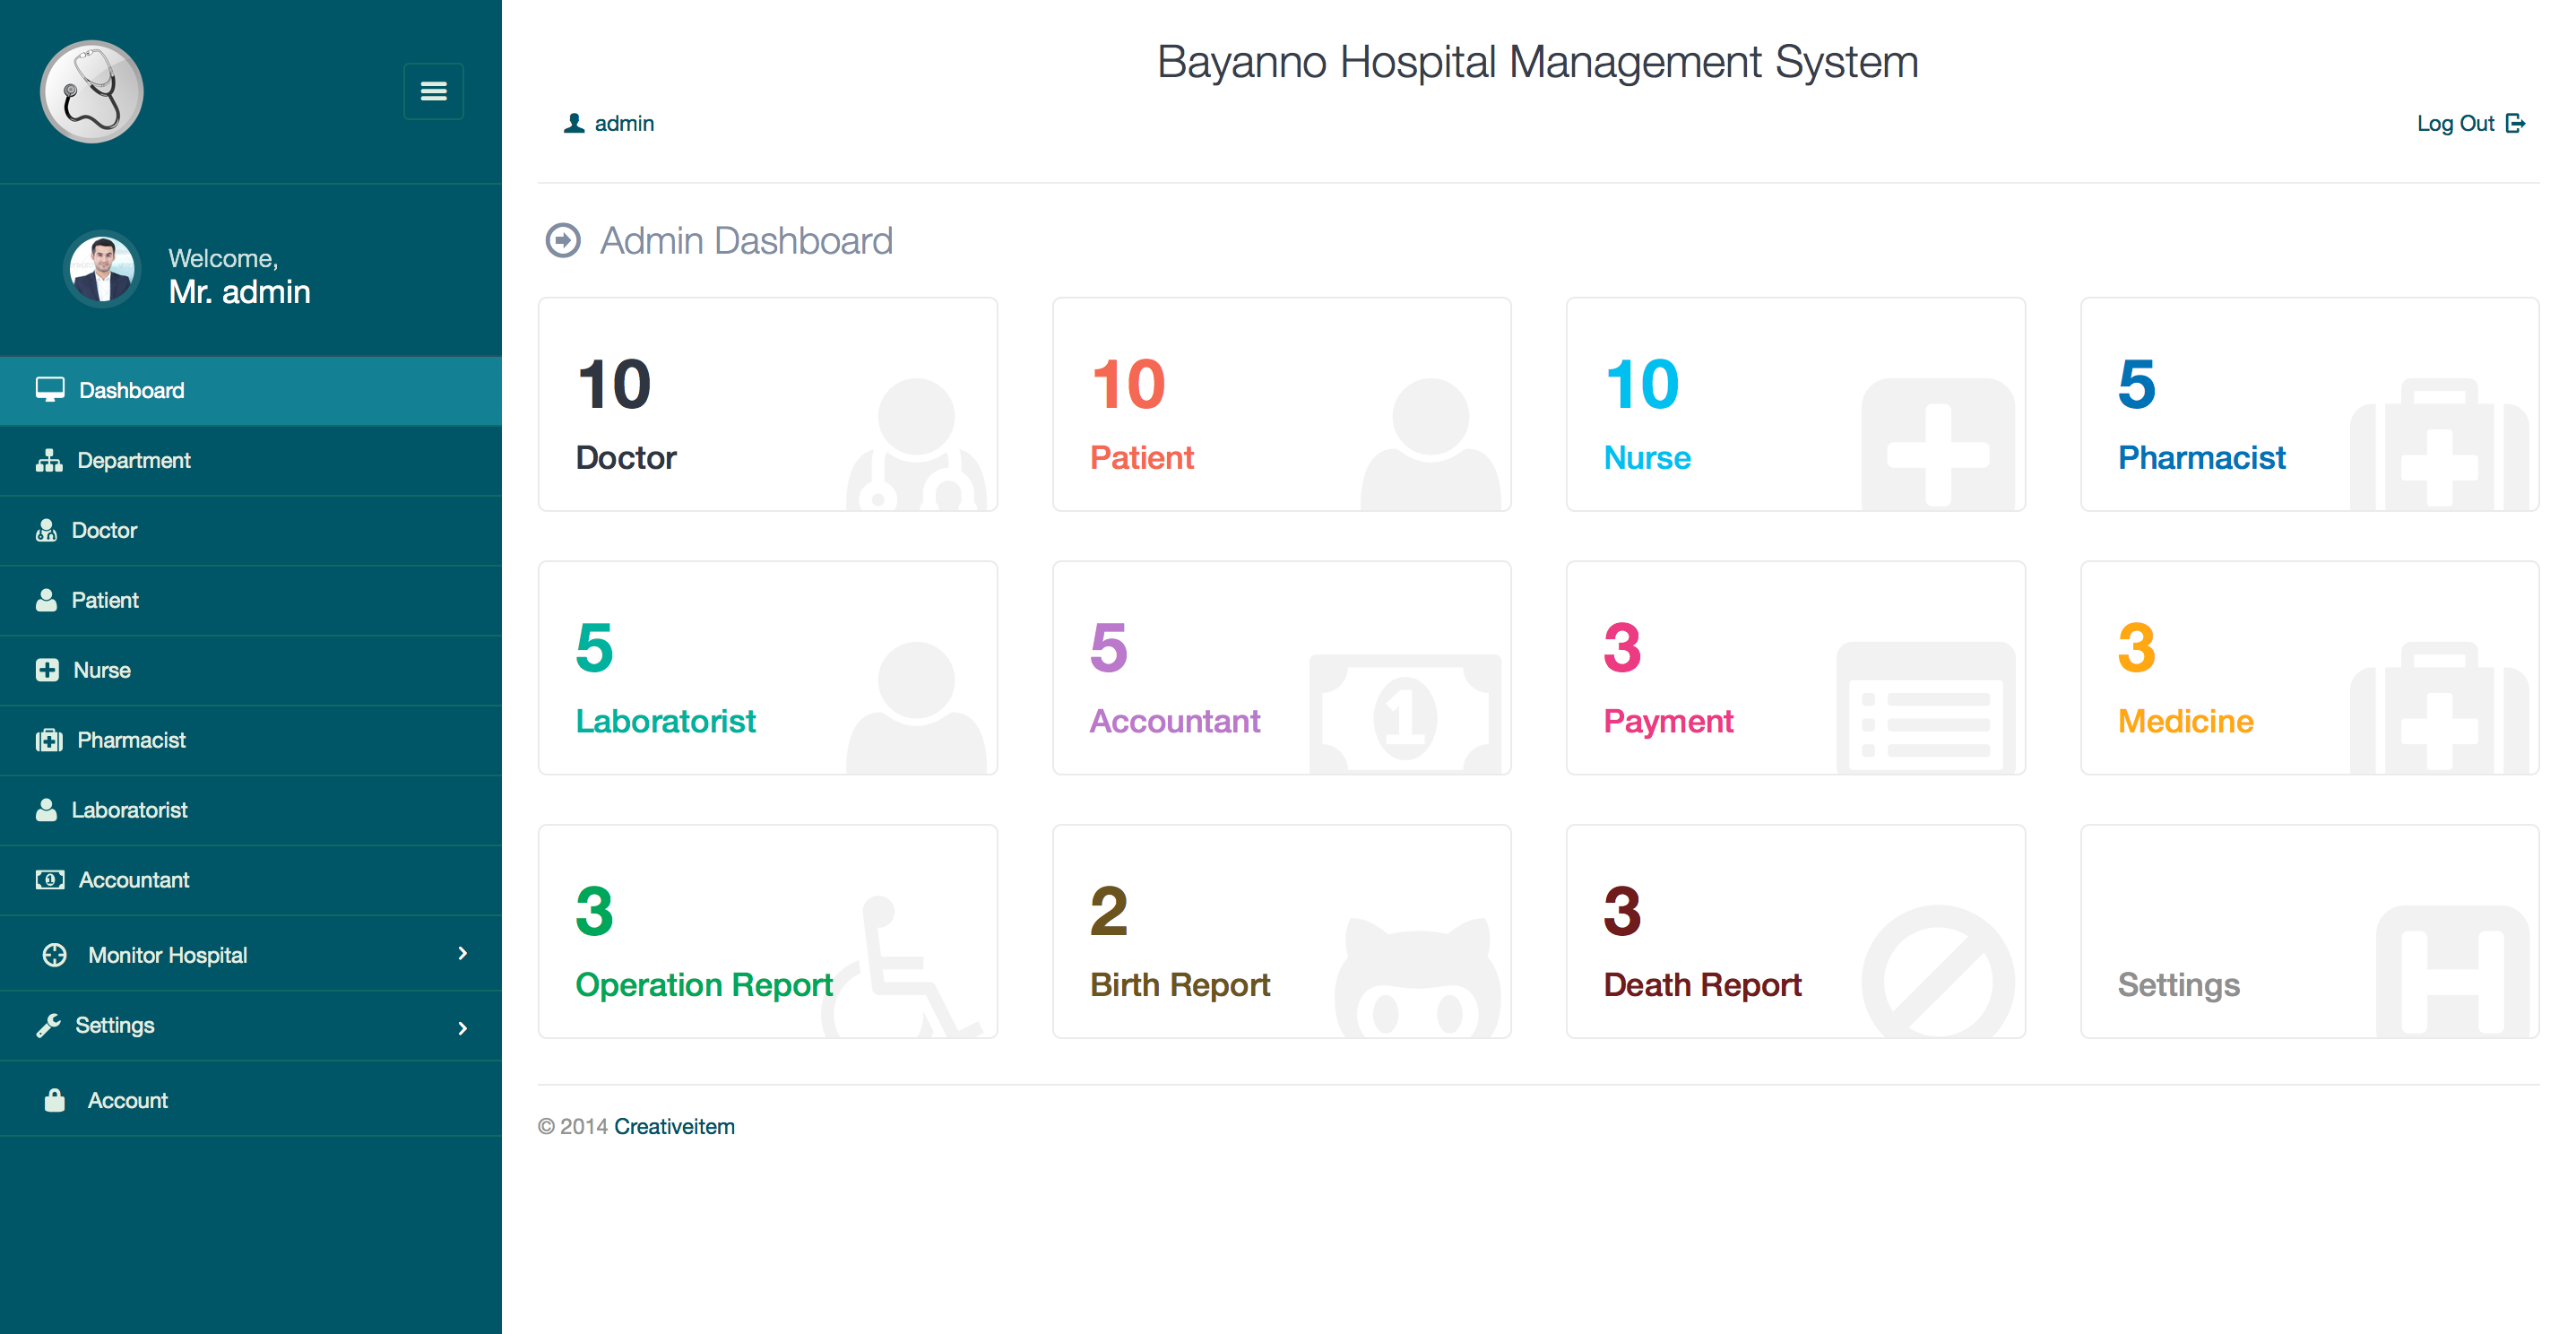 Bayanno Hospital Management System By Creativeitem